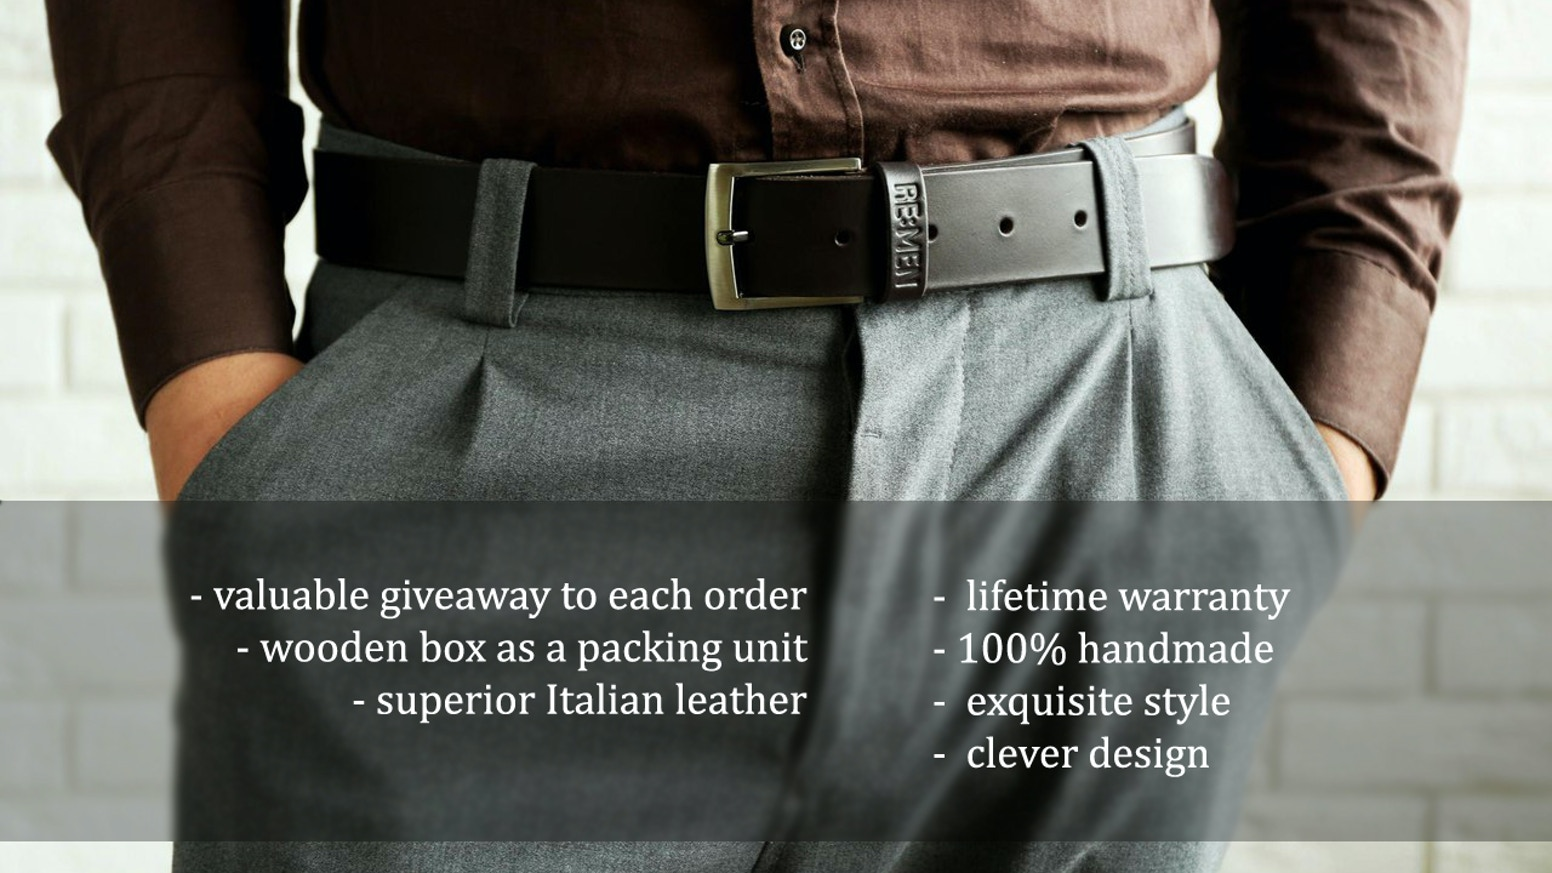 Remen handmade lifetime guaranteed leather belt by - How long do modular homes last ...